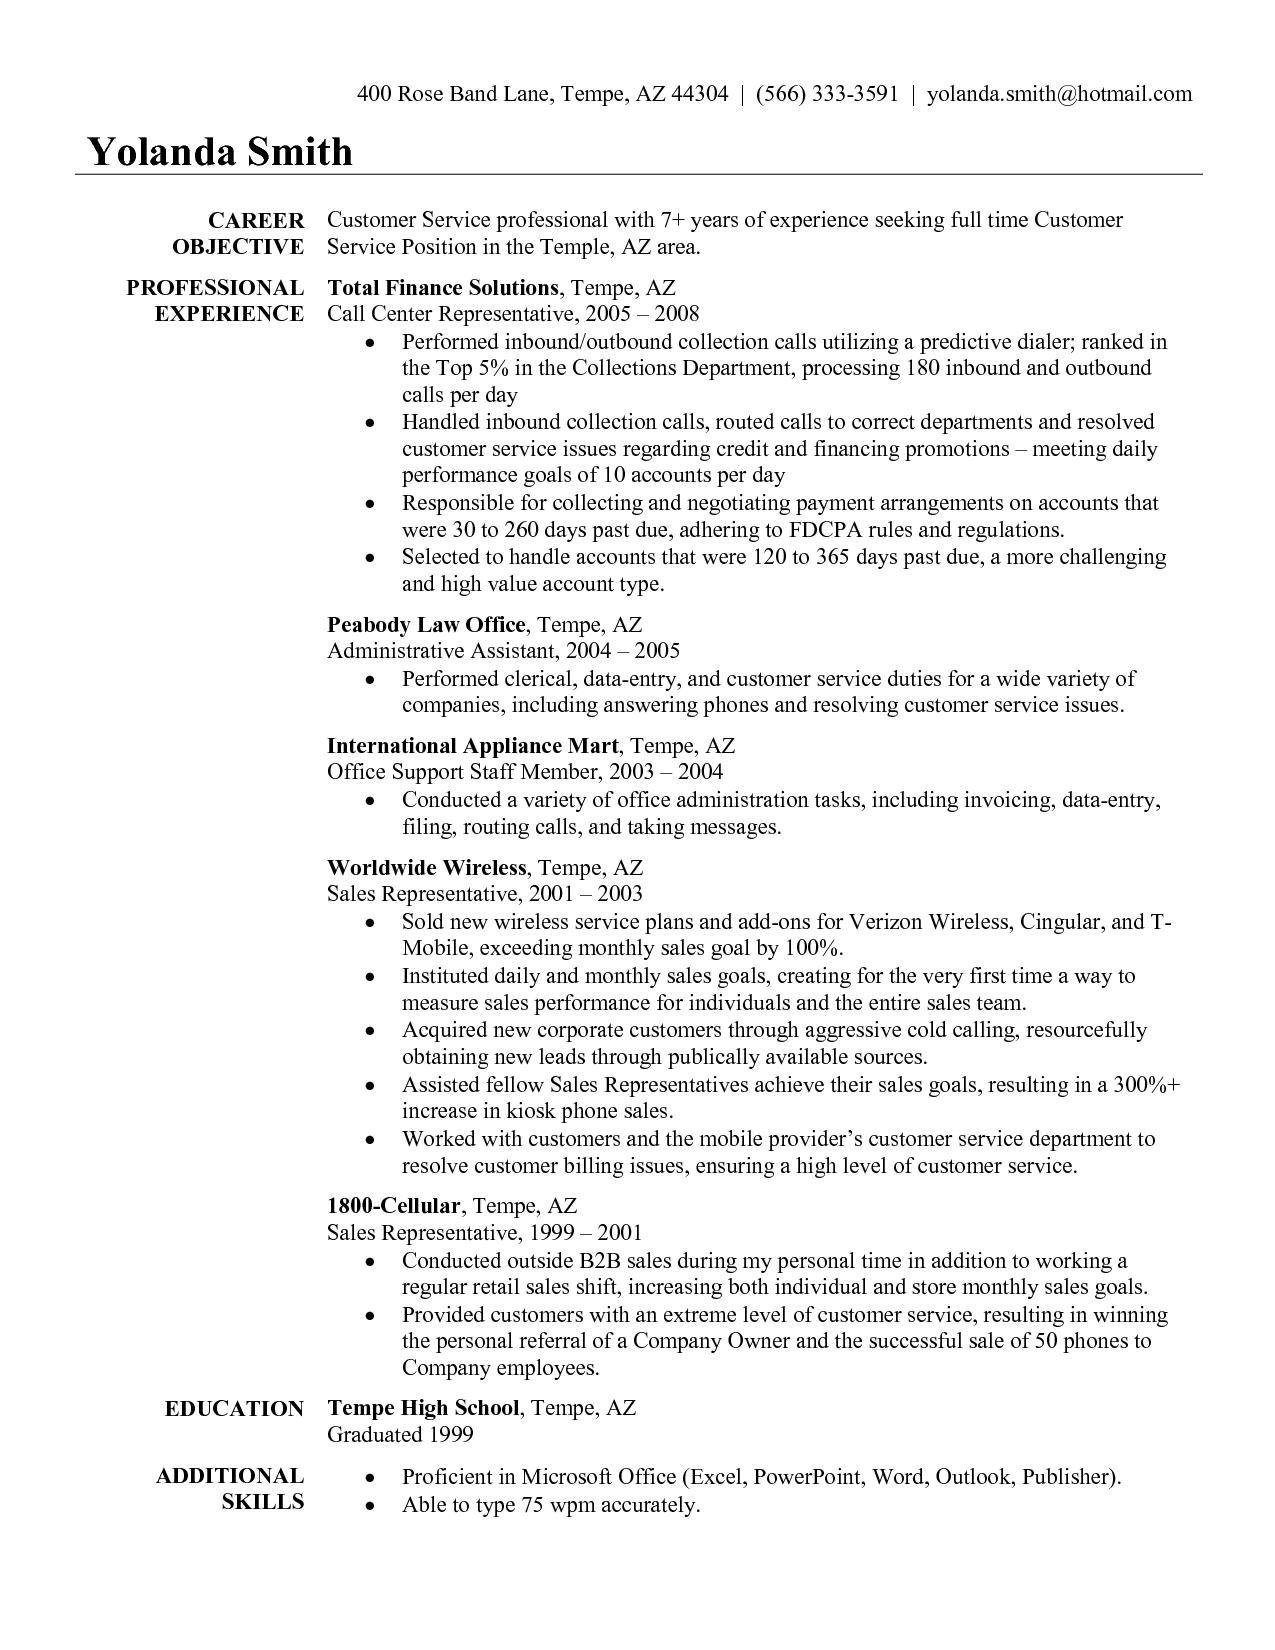 retail customer service resume objective